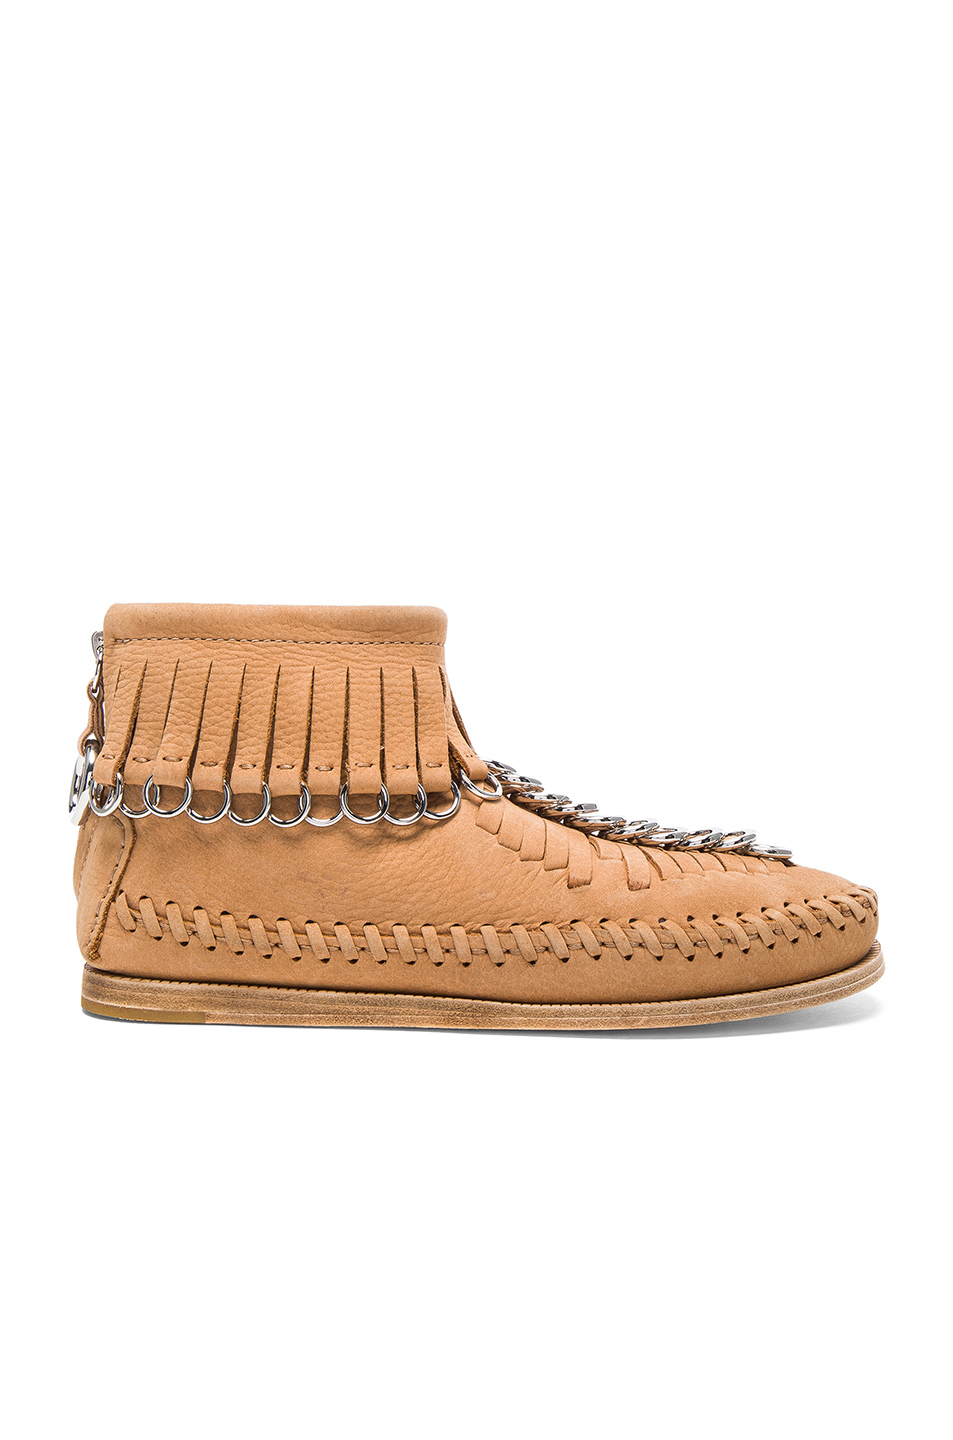 Photo of Alexander Wang Leather Montana Booties in Neutrals online sales